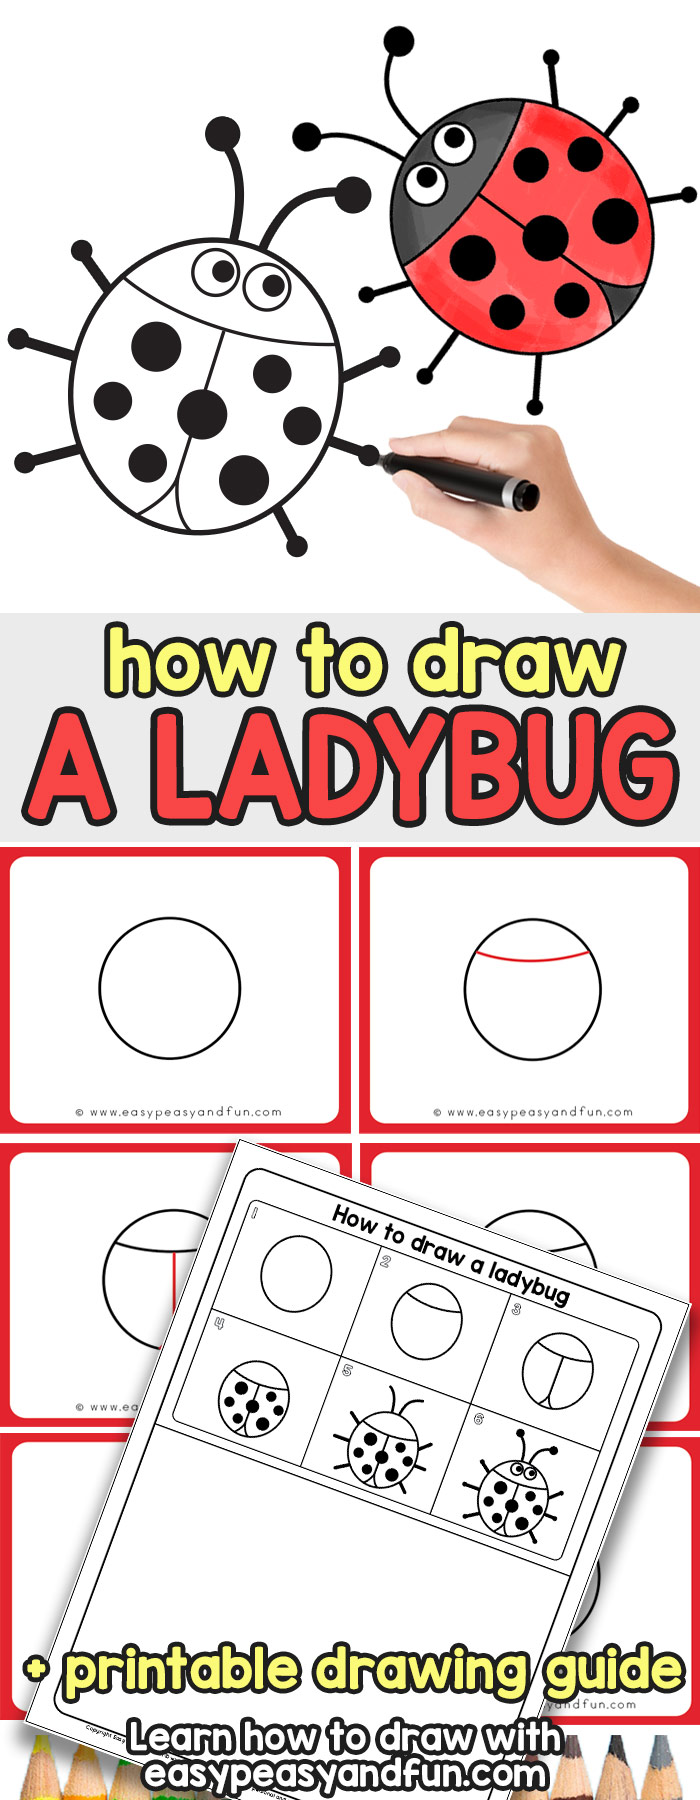 How to Draw a Ladybug - Easy Peasy and Fun